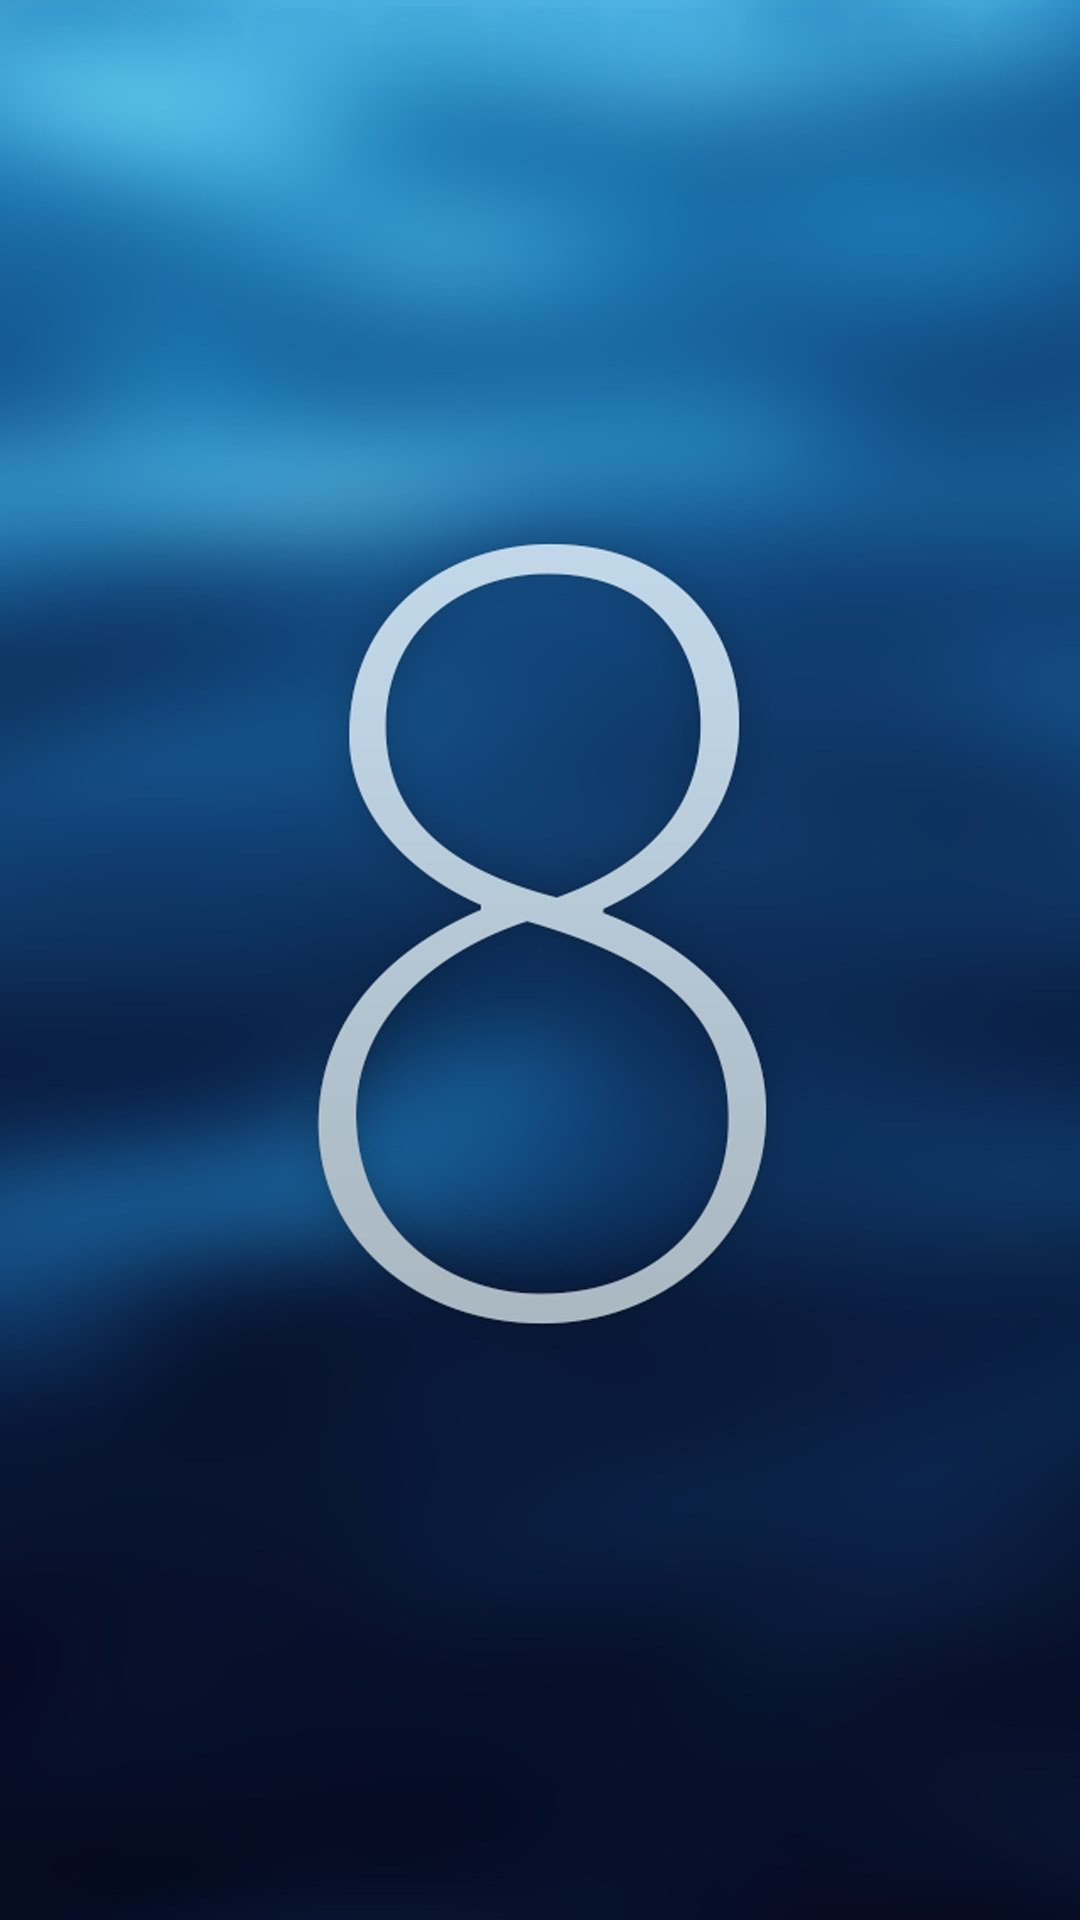 iOS 8 Stock Wallpaper 2 1080x1920